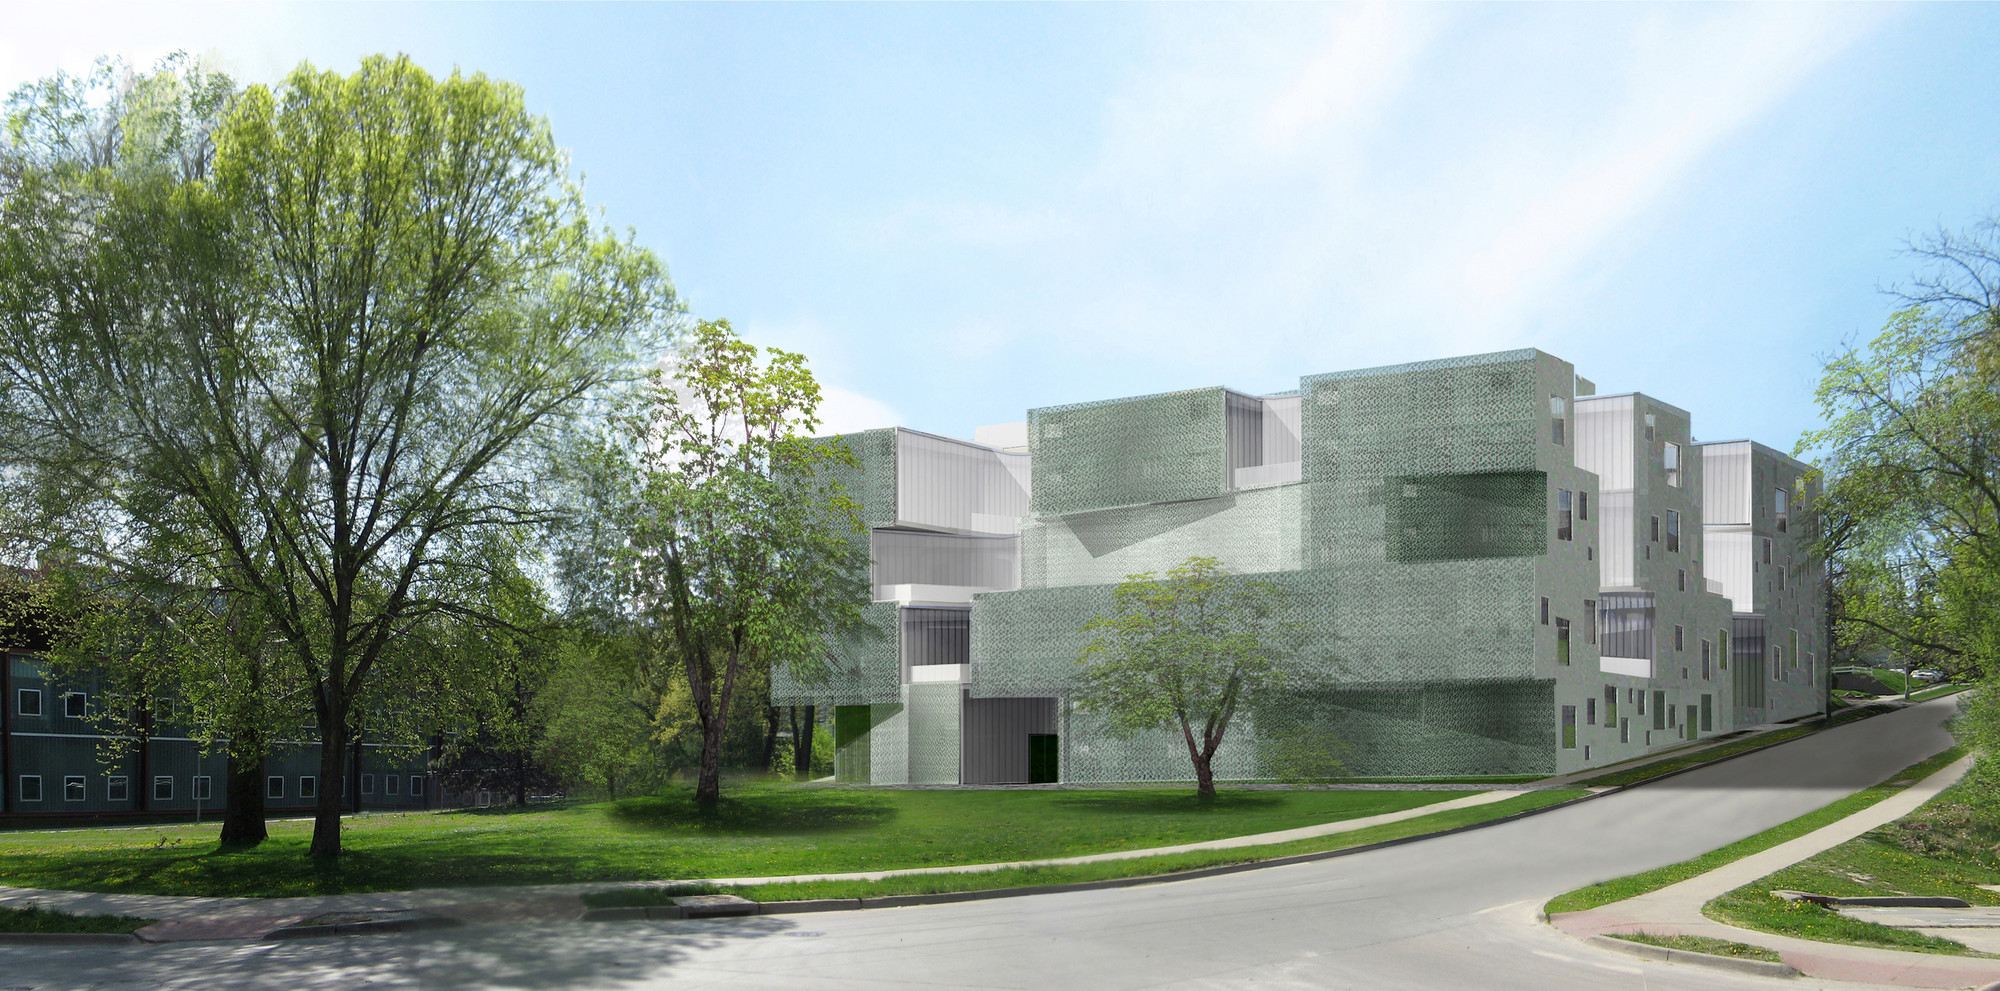 Exceptionnel Steven Holl Architects Tops Out Visual Arts Building For University Of Iowa,  Courtesy Of Steven